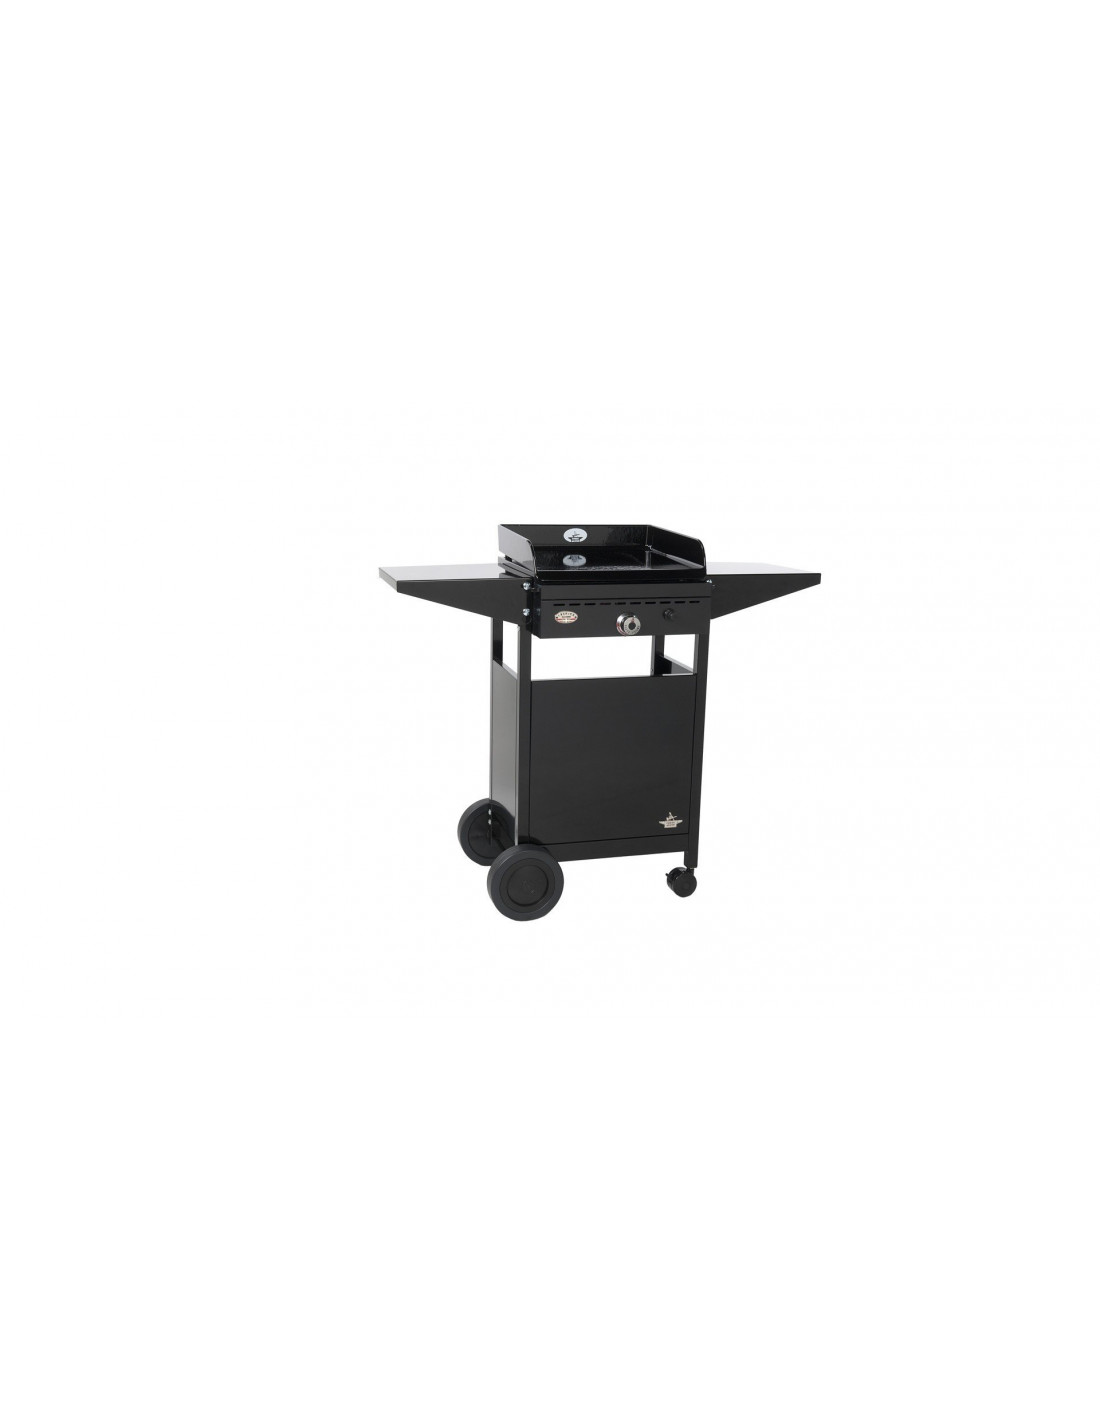 chariot plancha forge adour iberica 450 esprit barbecue. Black Bedroom Furniture Sets. Home Design Ideas